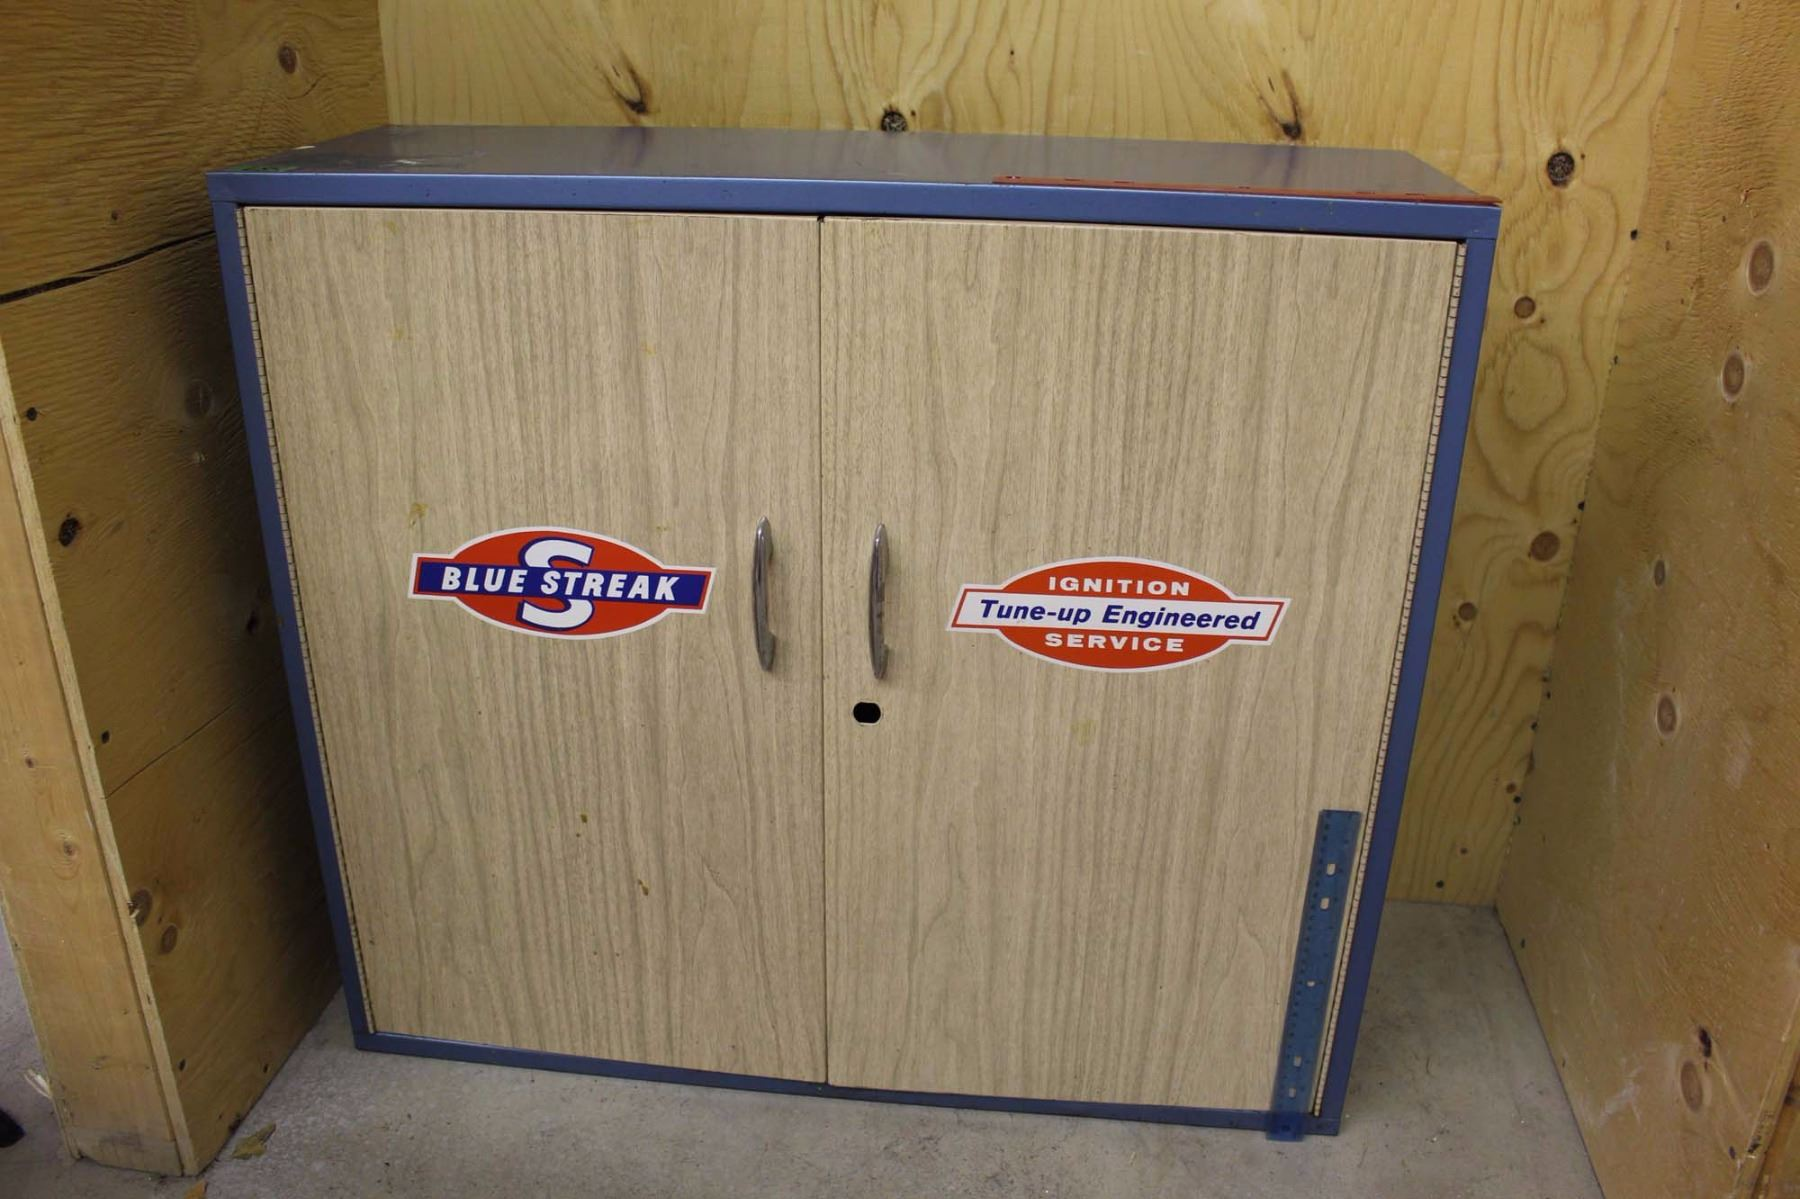 Image 1 : Vintage Blue Streak Ignition Tune Up Metal Cabinet ...